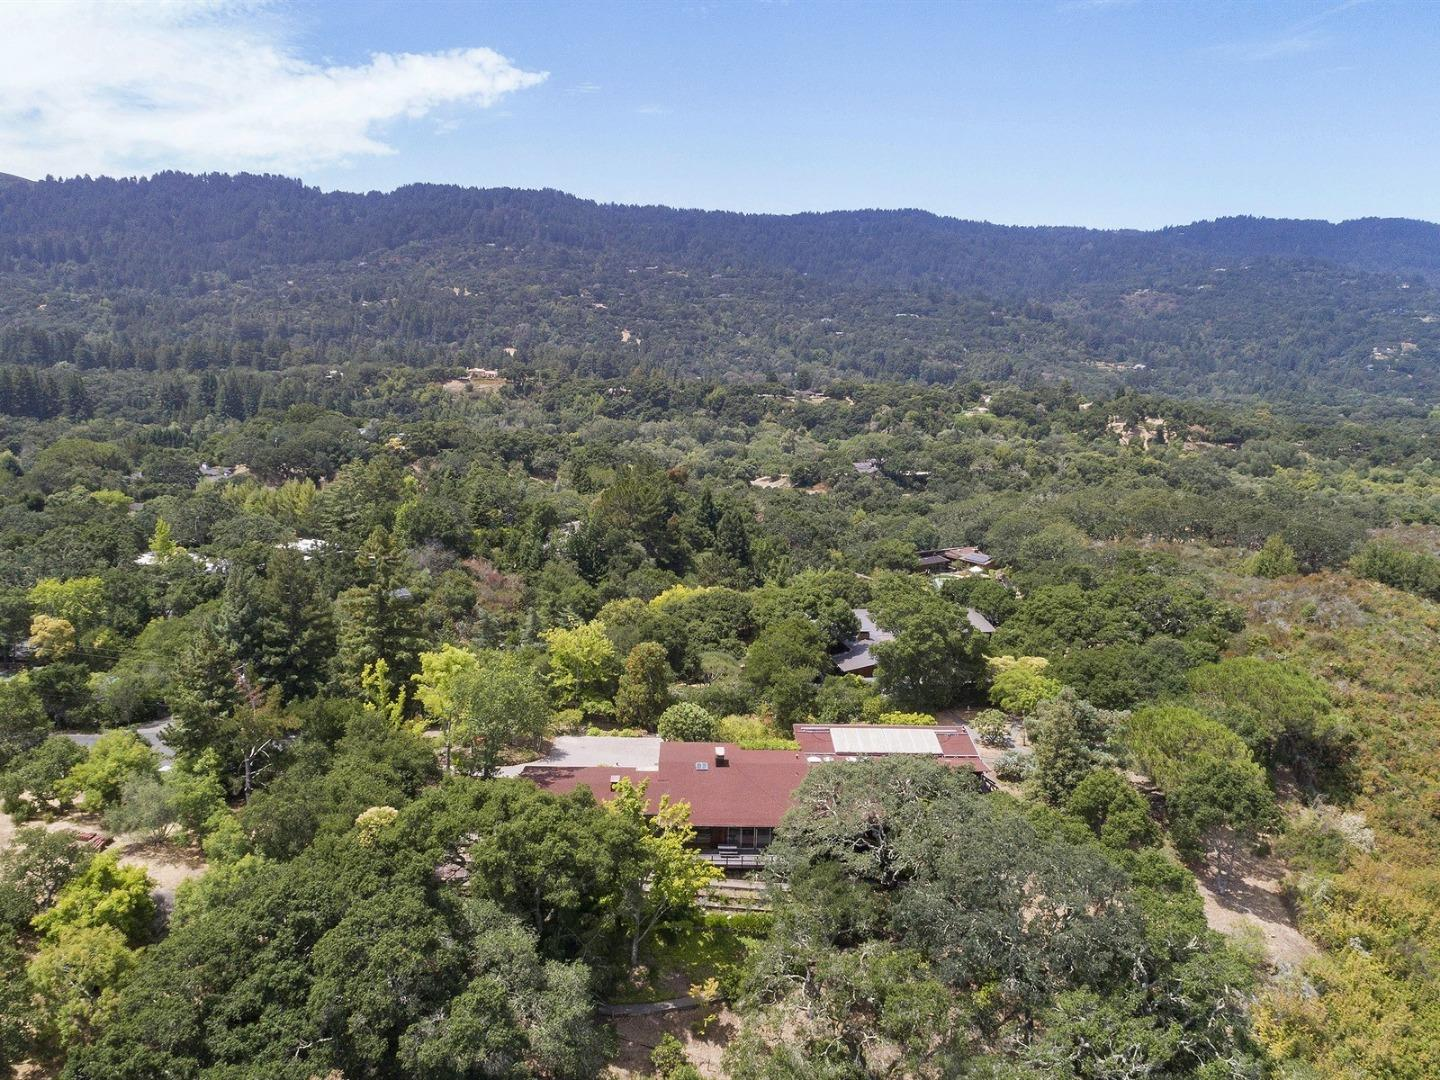 Portola Valley - Portola Valley Real Estate - Zach Trailer Group